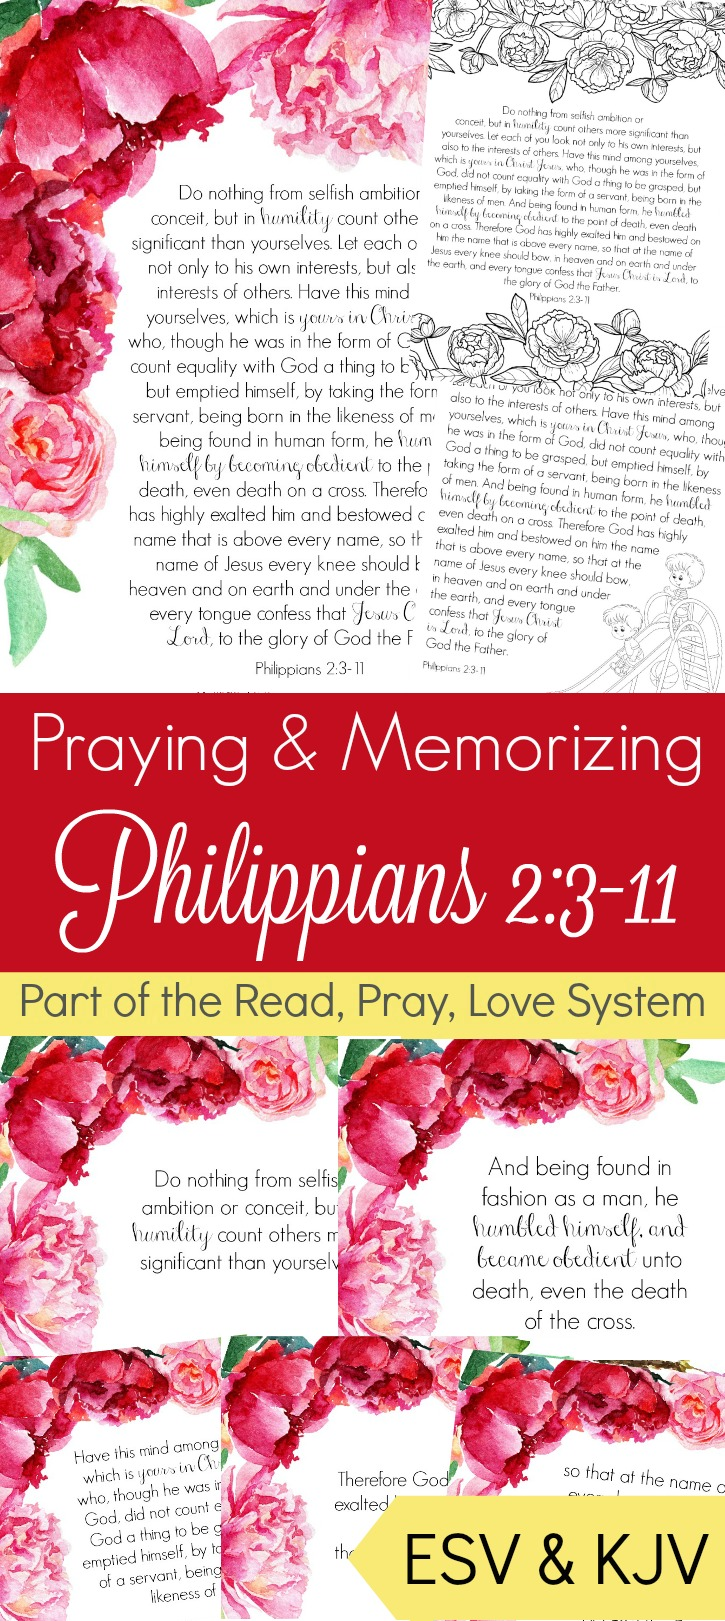 What better way to begin thinking of others than by making sure to commit God's truths into your heart through prayer! These prayerand memory cards of Philippians 2:3-11 are sure to help you reach your goal of caring for others.